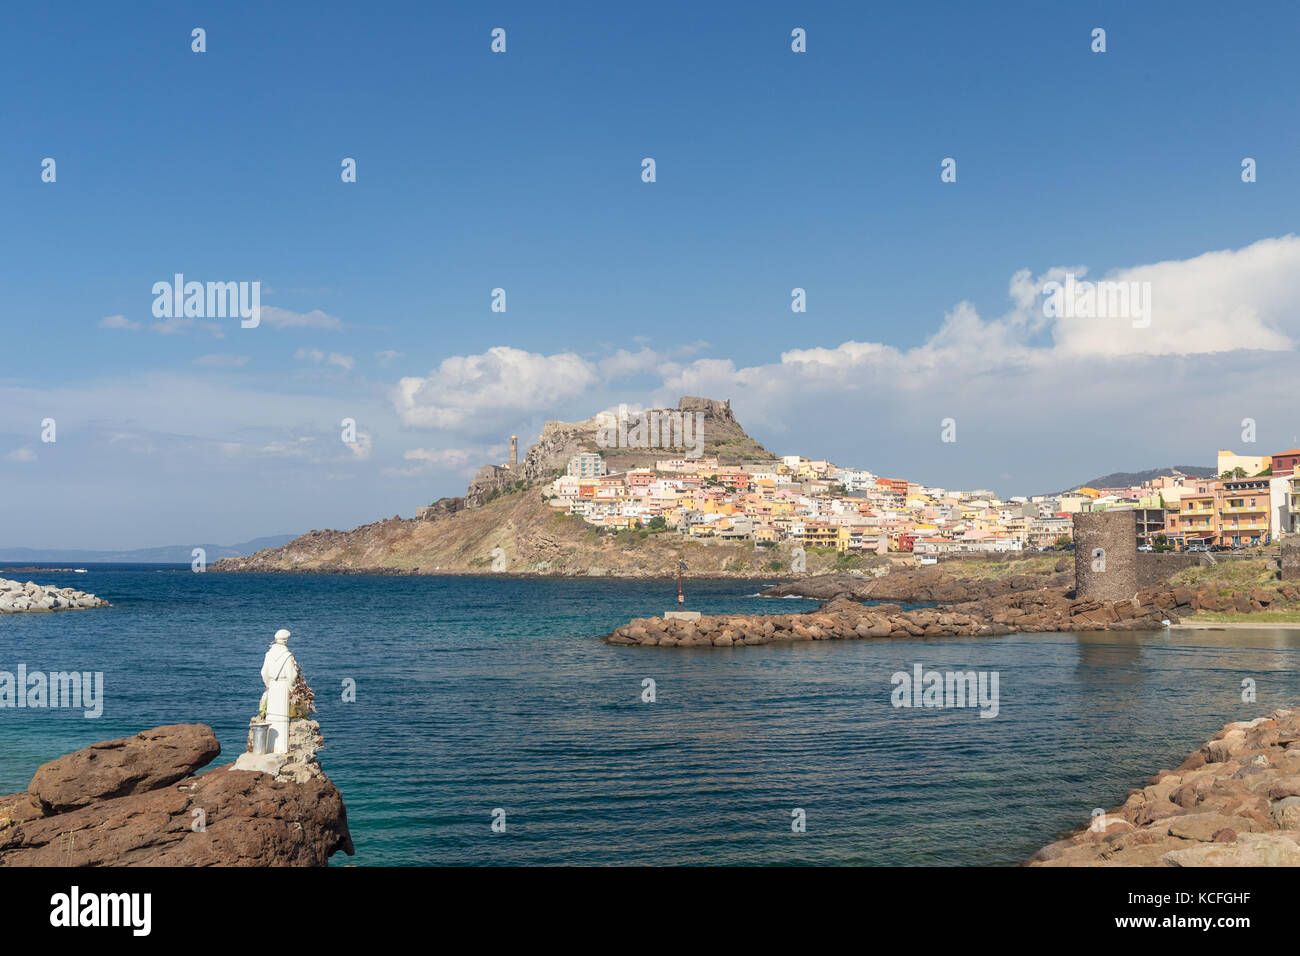 Castelsardo is a town in Sardinia, Italy, located in the northwest of the island - Stock Image